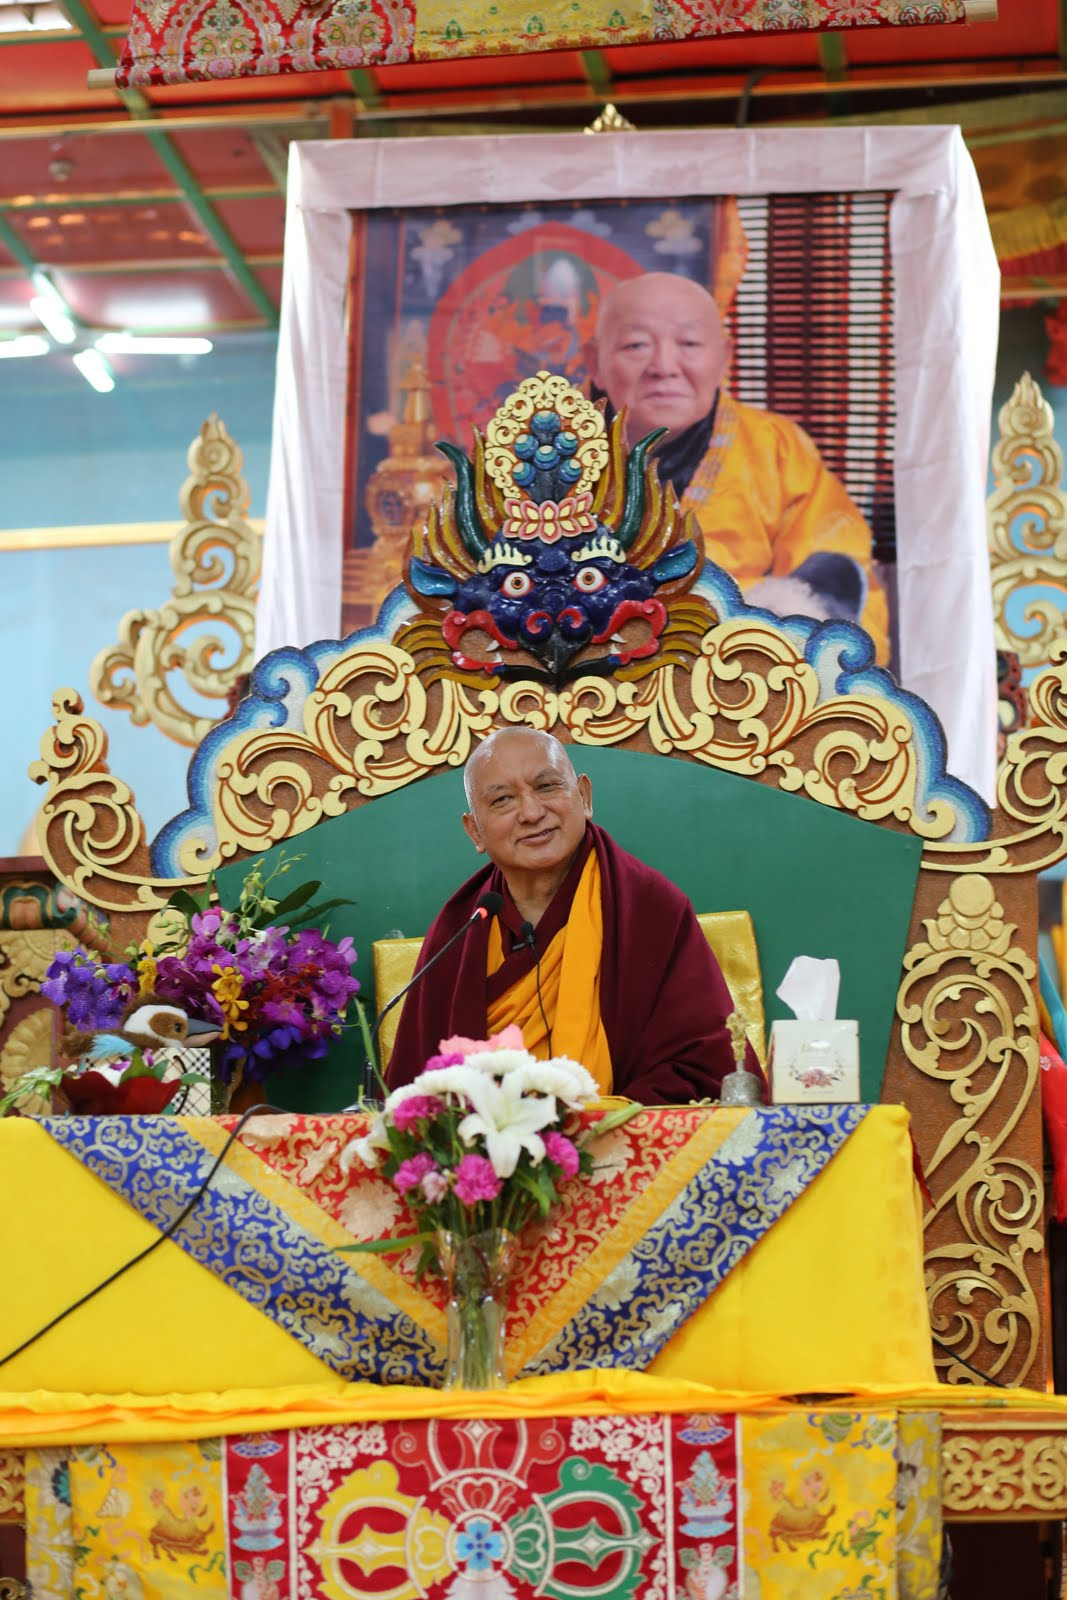 Rinpoche at 100 Million Mani Retreat, Mongolia, August 2013. Photo by Ven. Roger Kunsang.